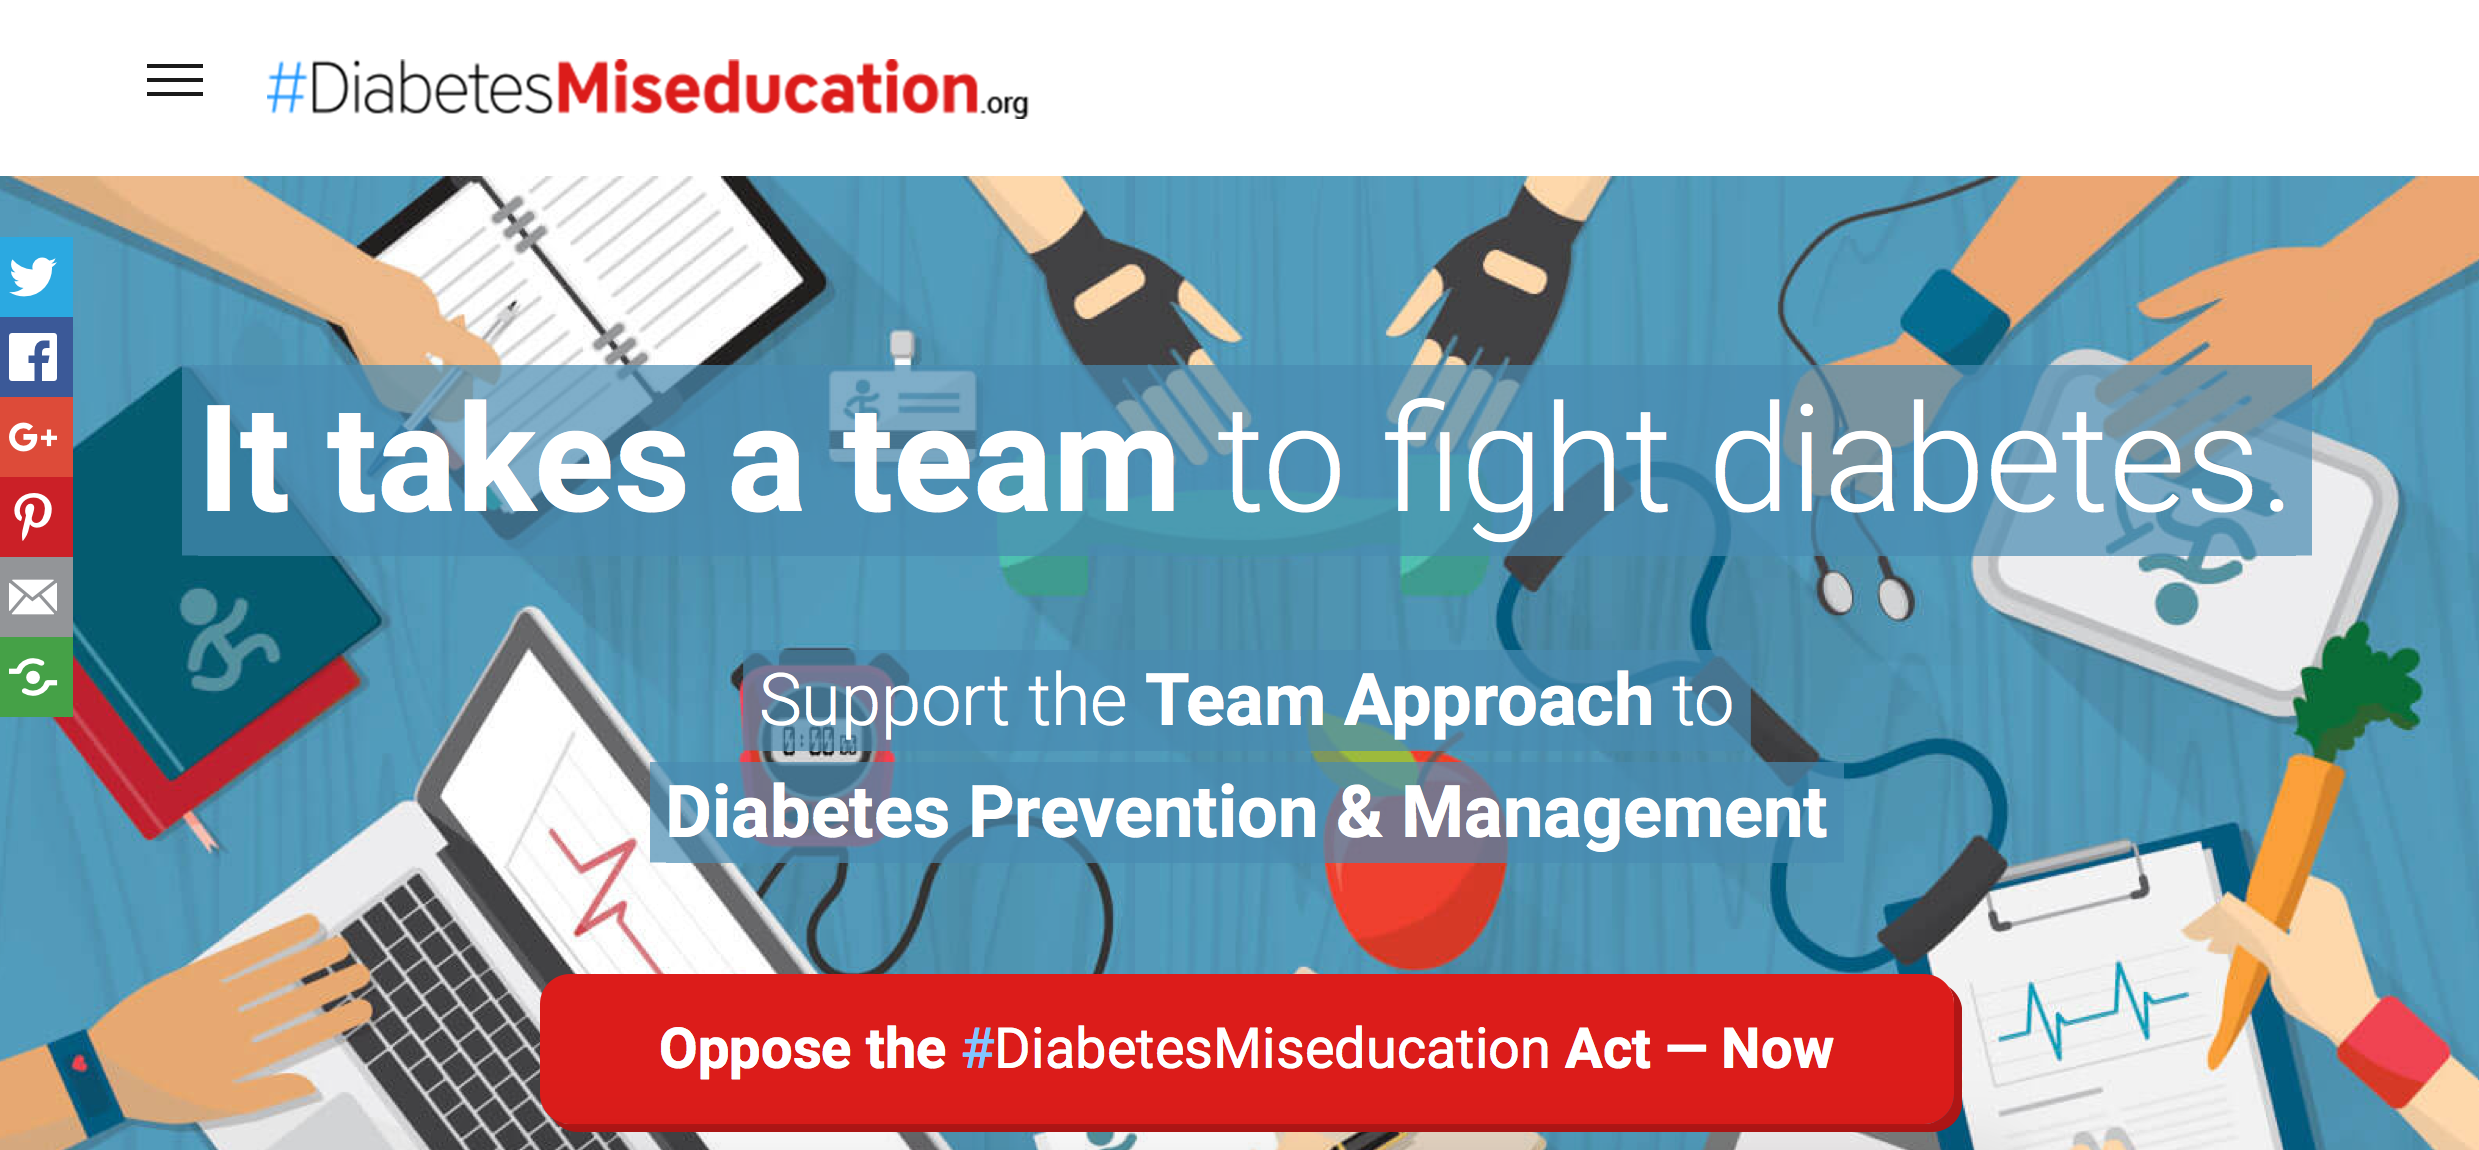 Diabetes Miseducation